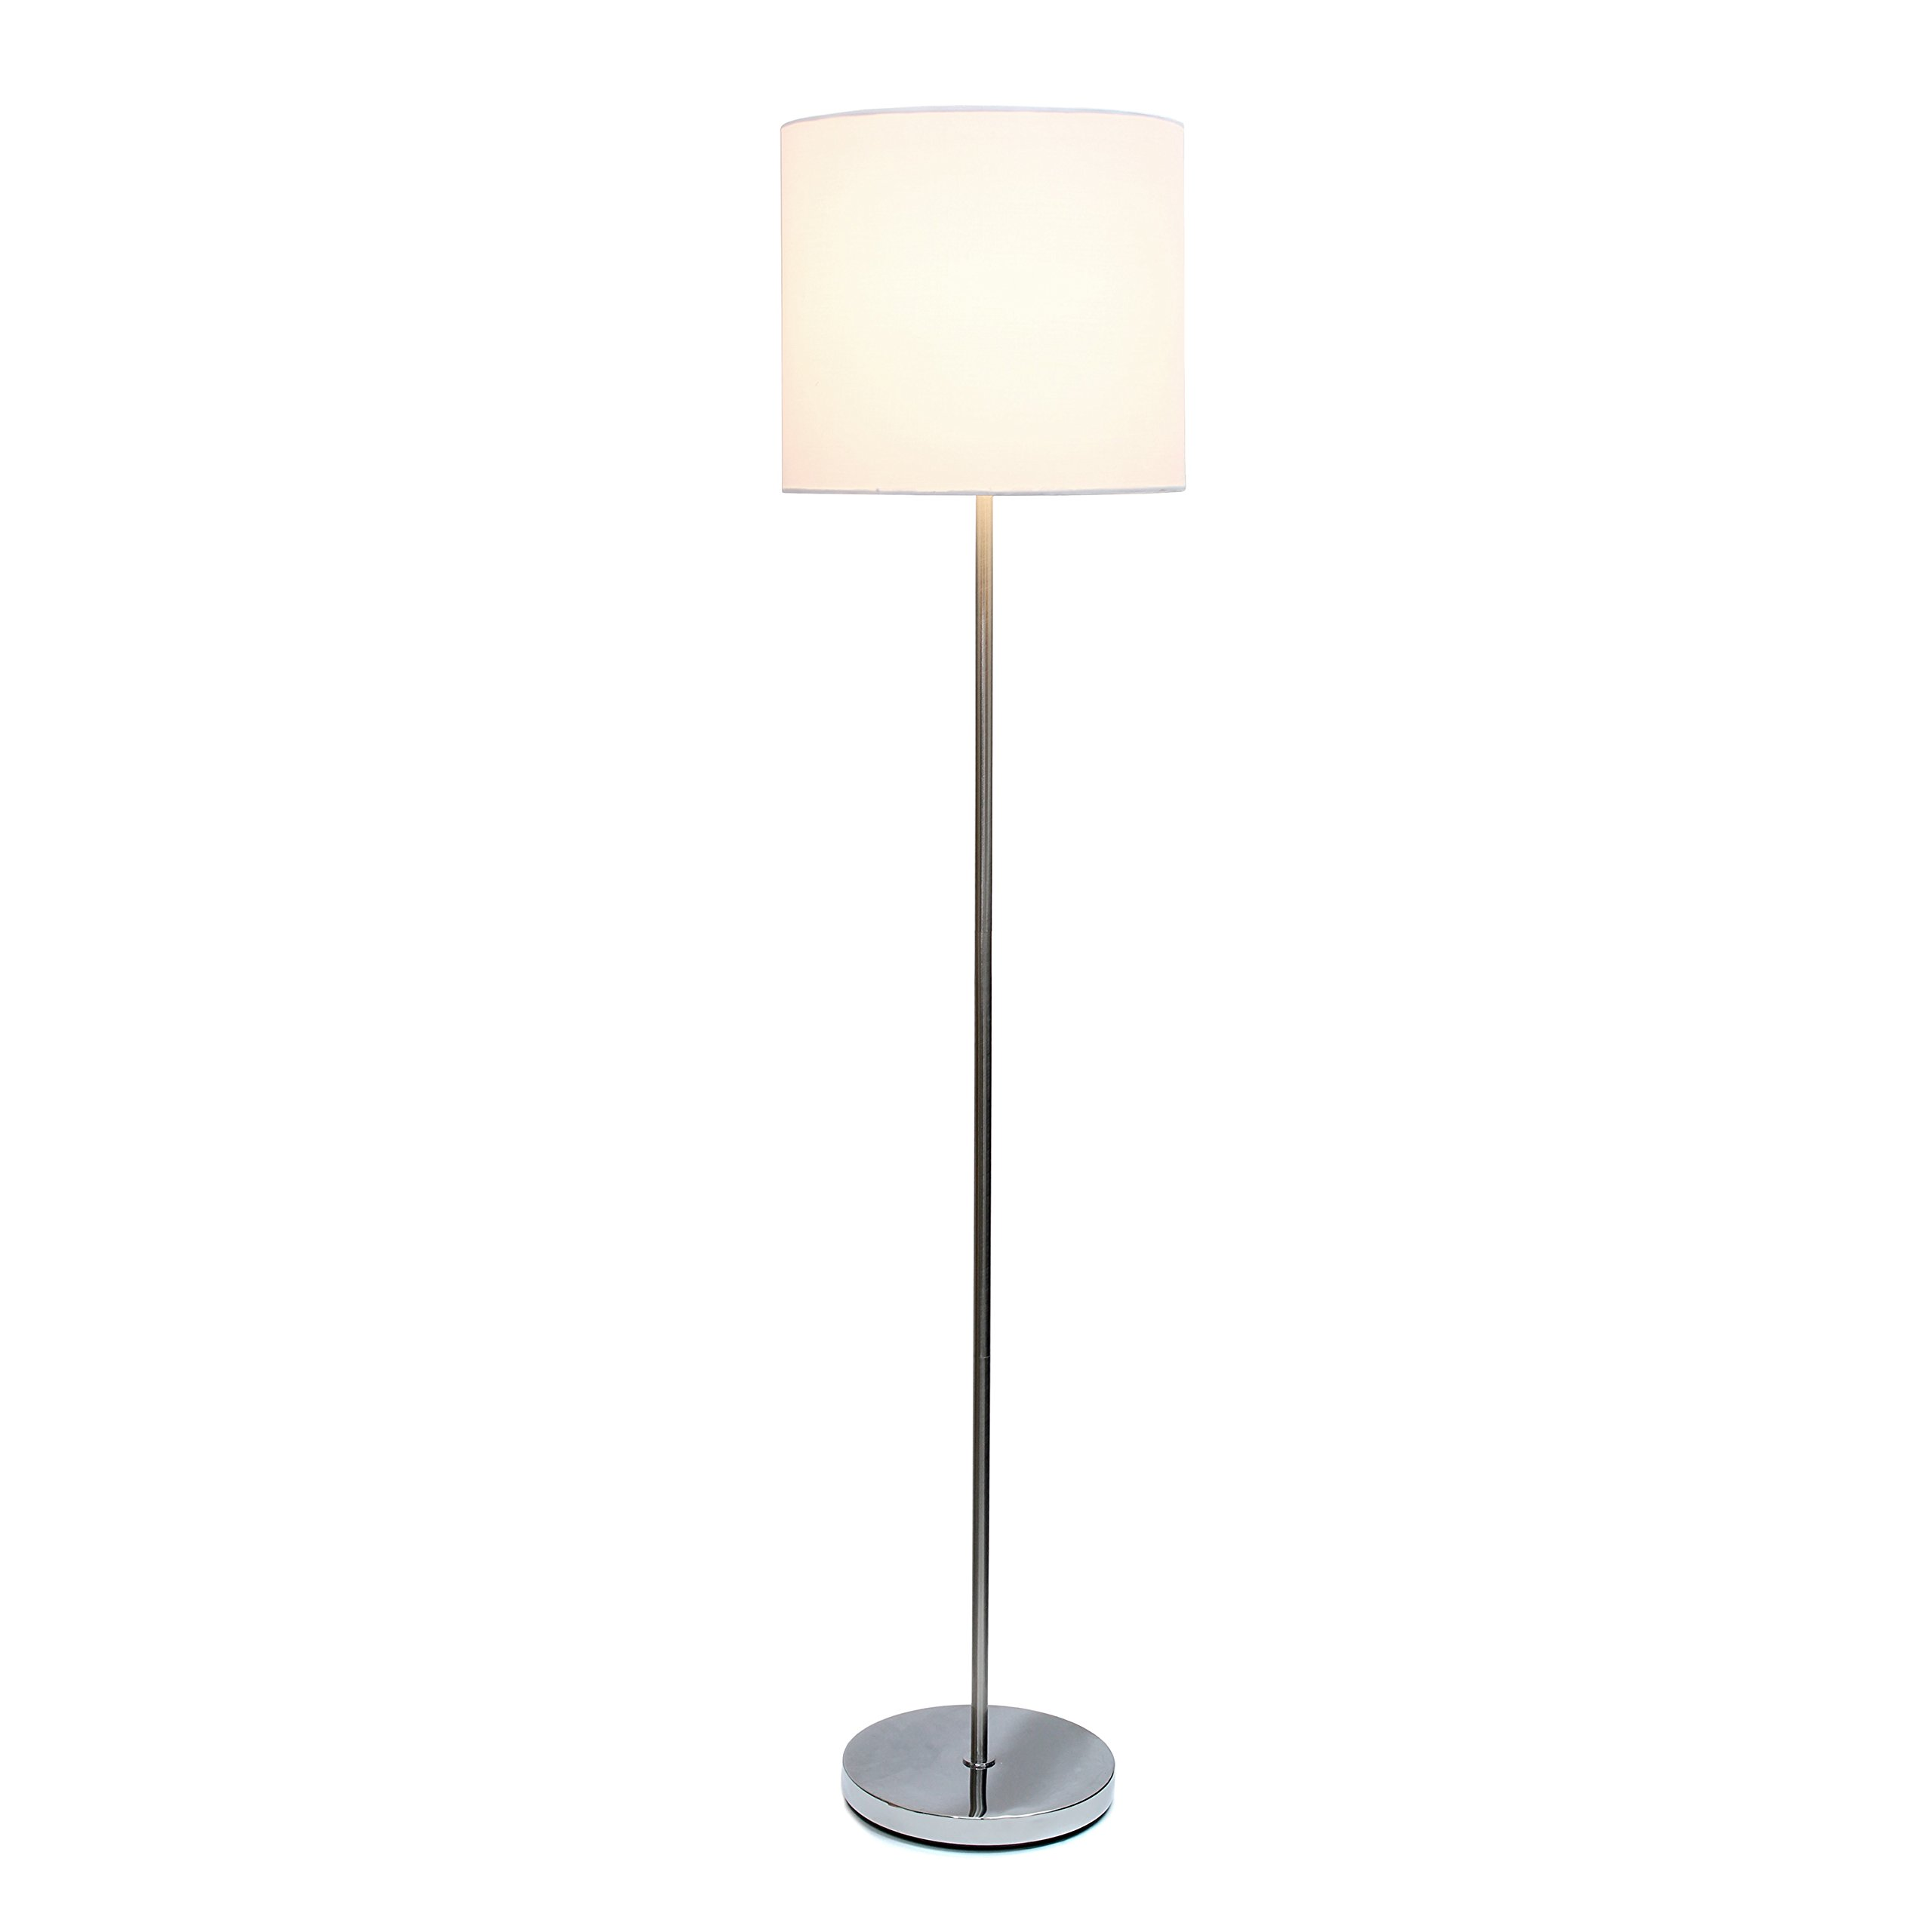 Simple Designs LF2004-WHT Brushed Nickel Drum Shade Floor Lamp, White